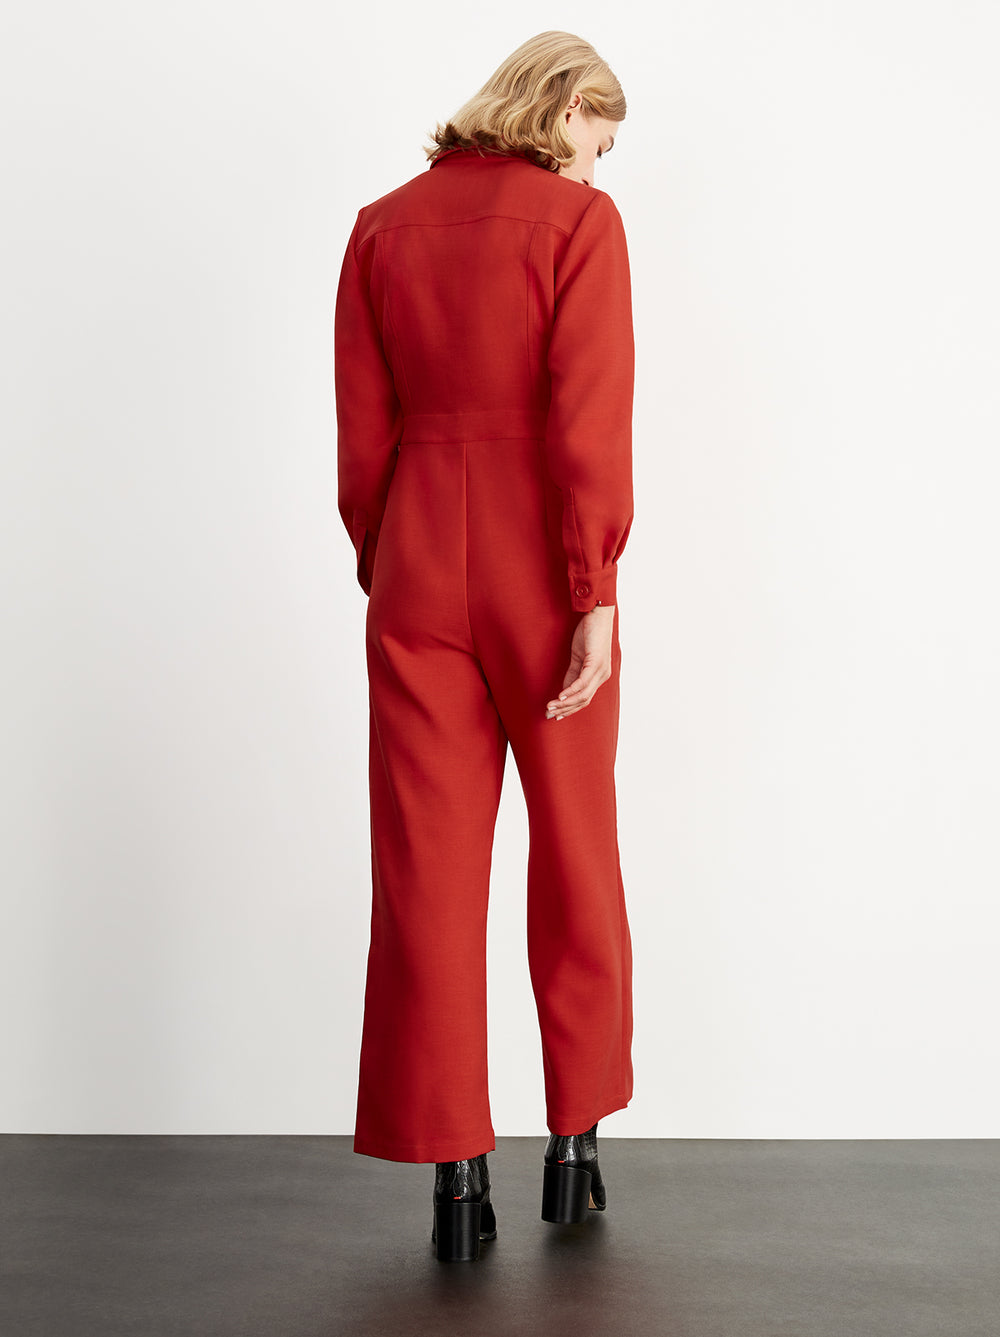 Monica Red Tailored Jumpsuit by KITRI Studio